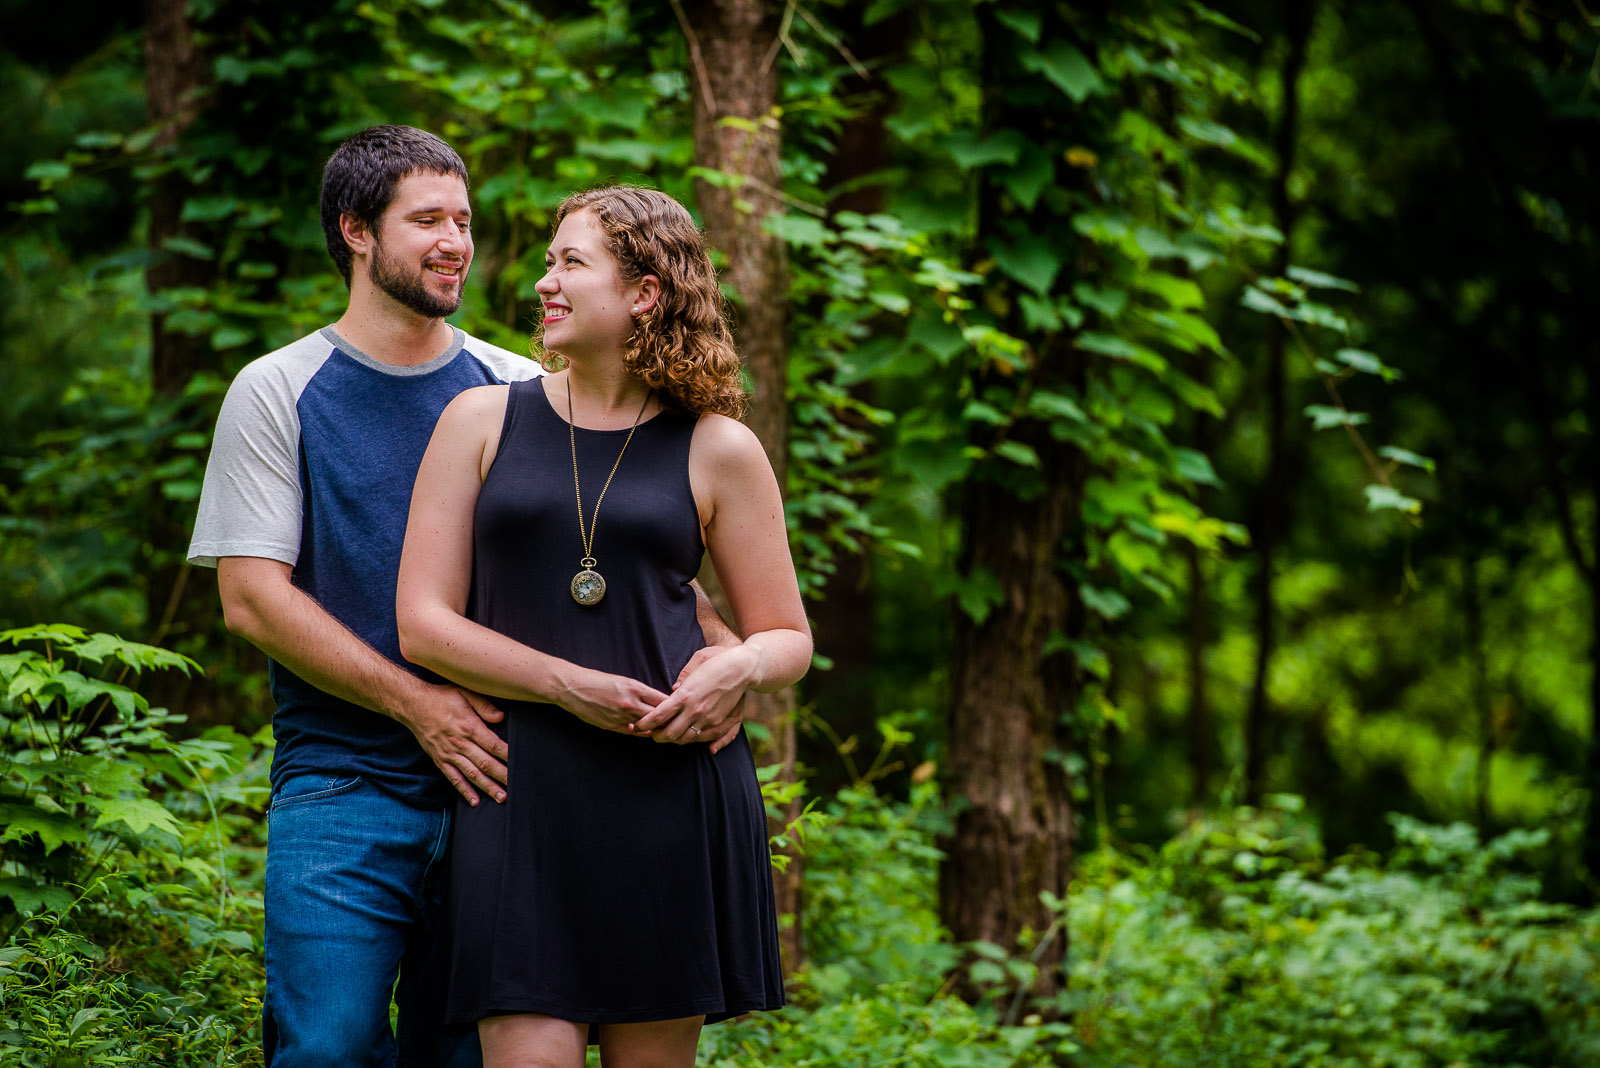 Eric_and_Christy_Photography_Blog_Engagement_Andrea_Clint-17